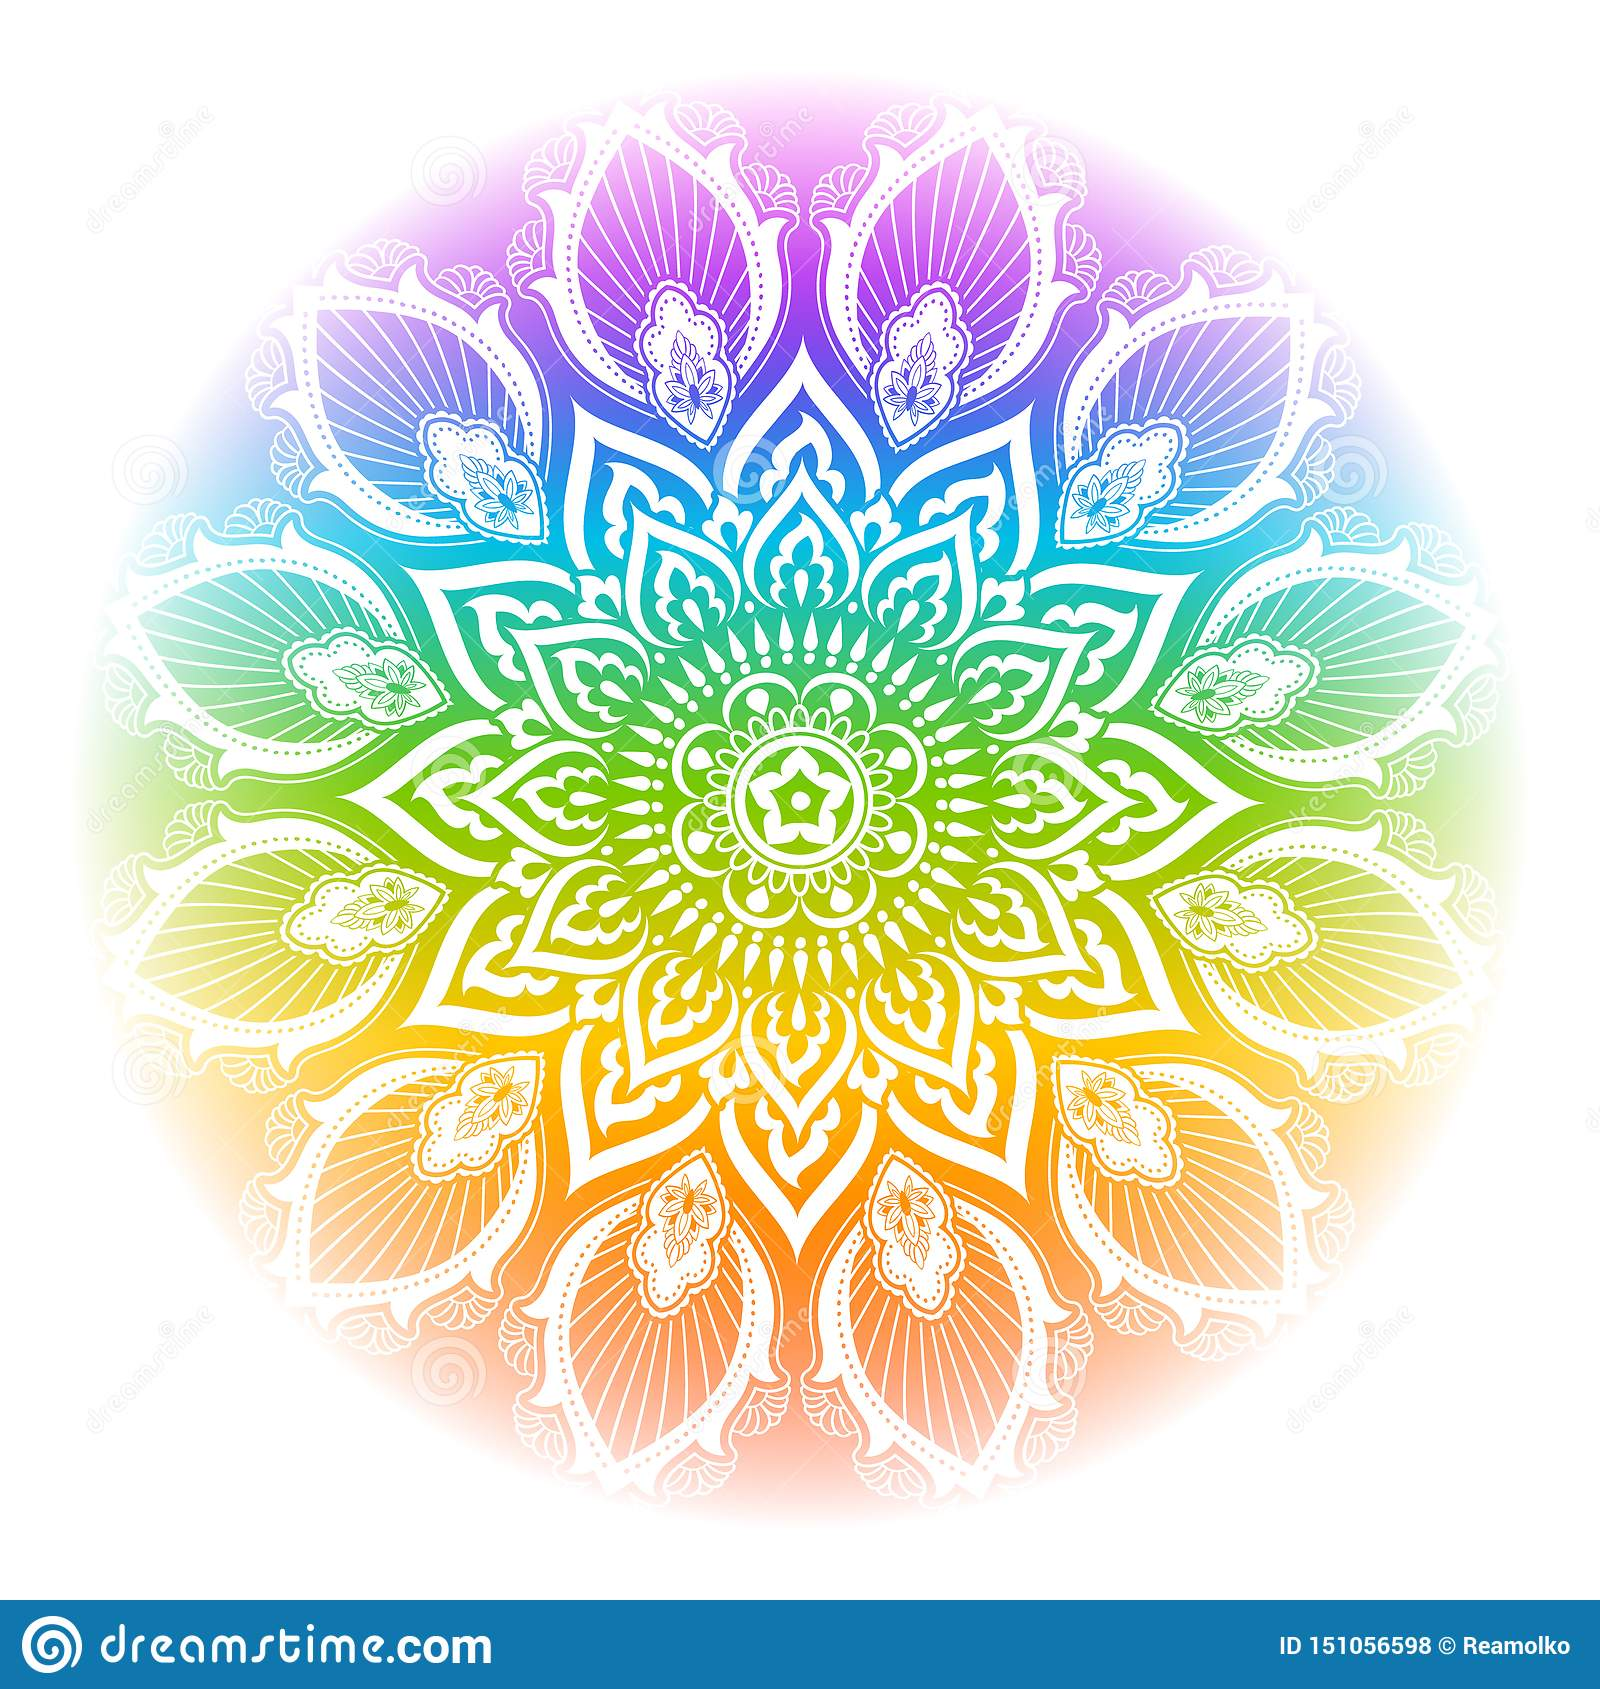 289+ Rainbow Mandala Svg – SVG,PNG,DXF,EPS include